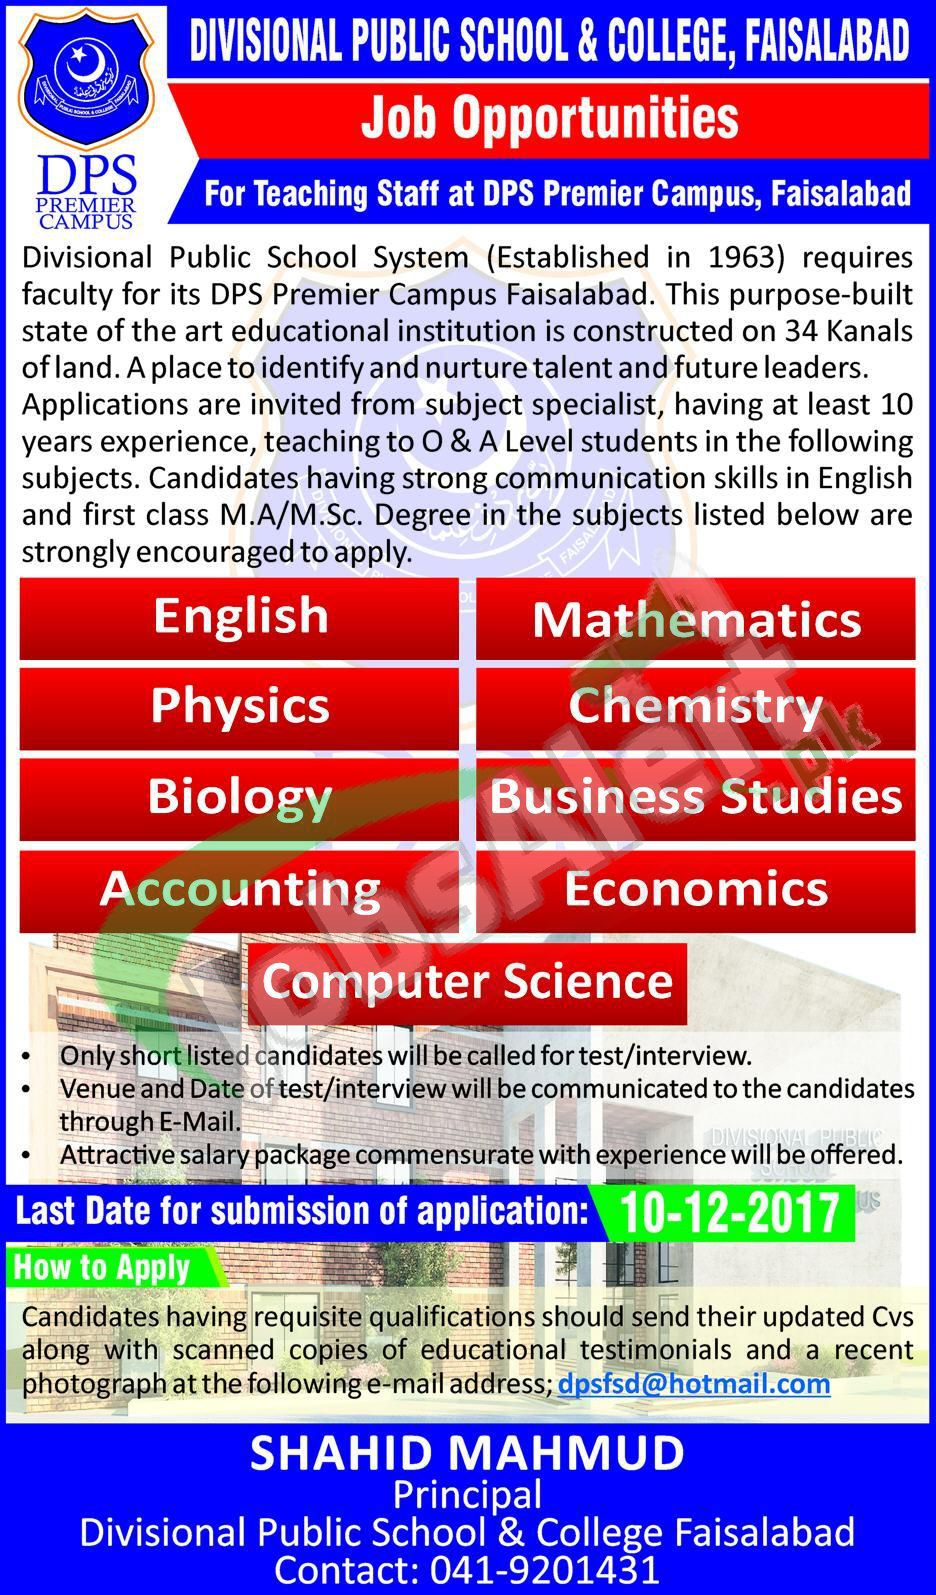 Jobs In Dps College Faisalabad 2017 For Faculty Staff Jobs In